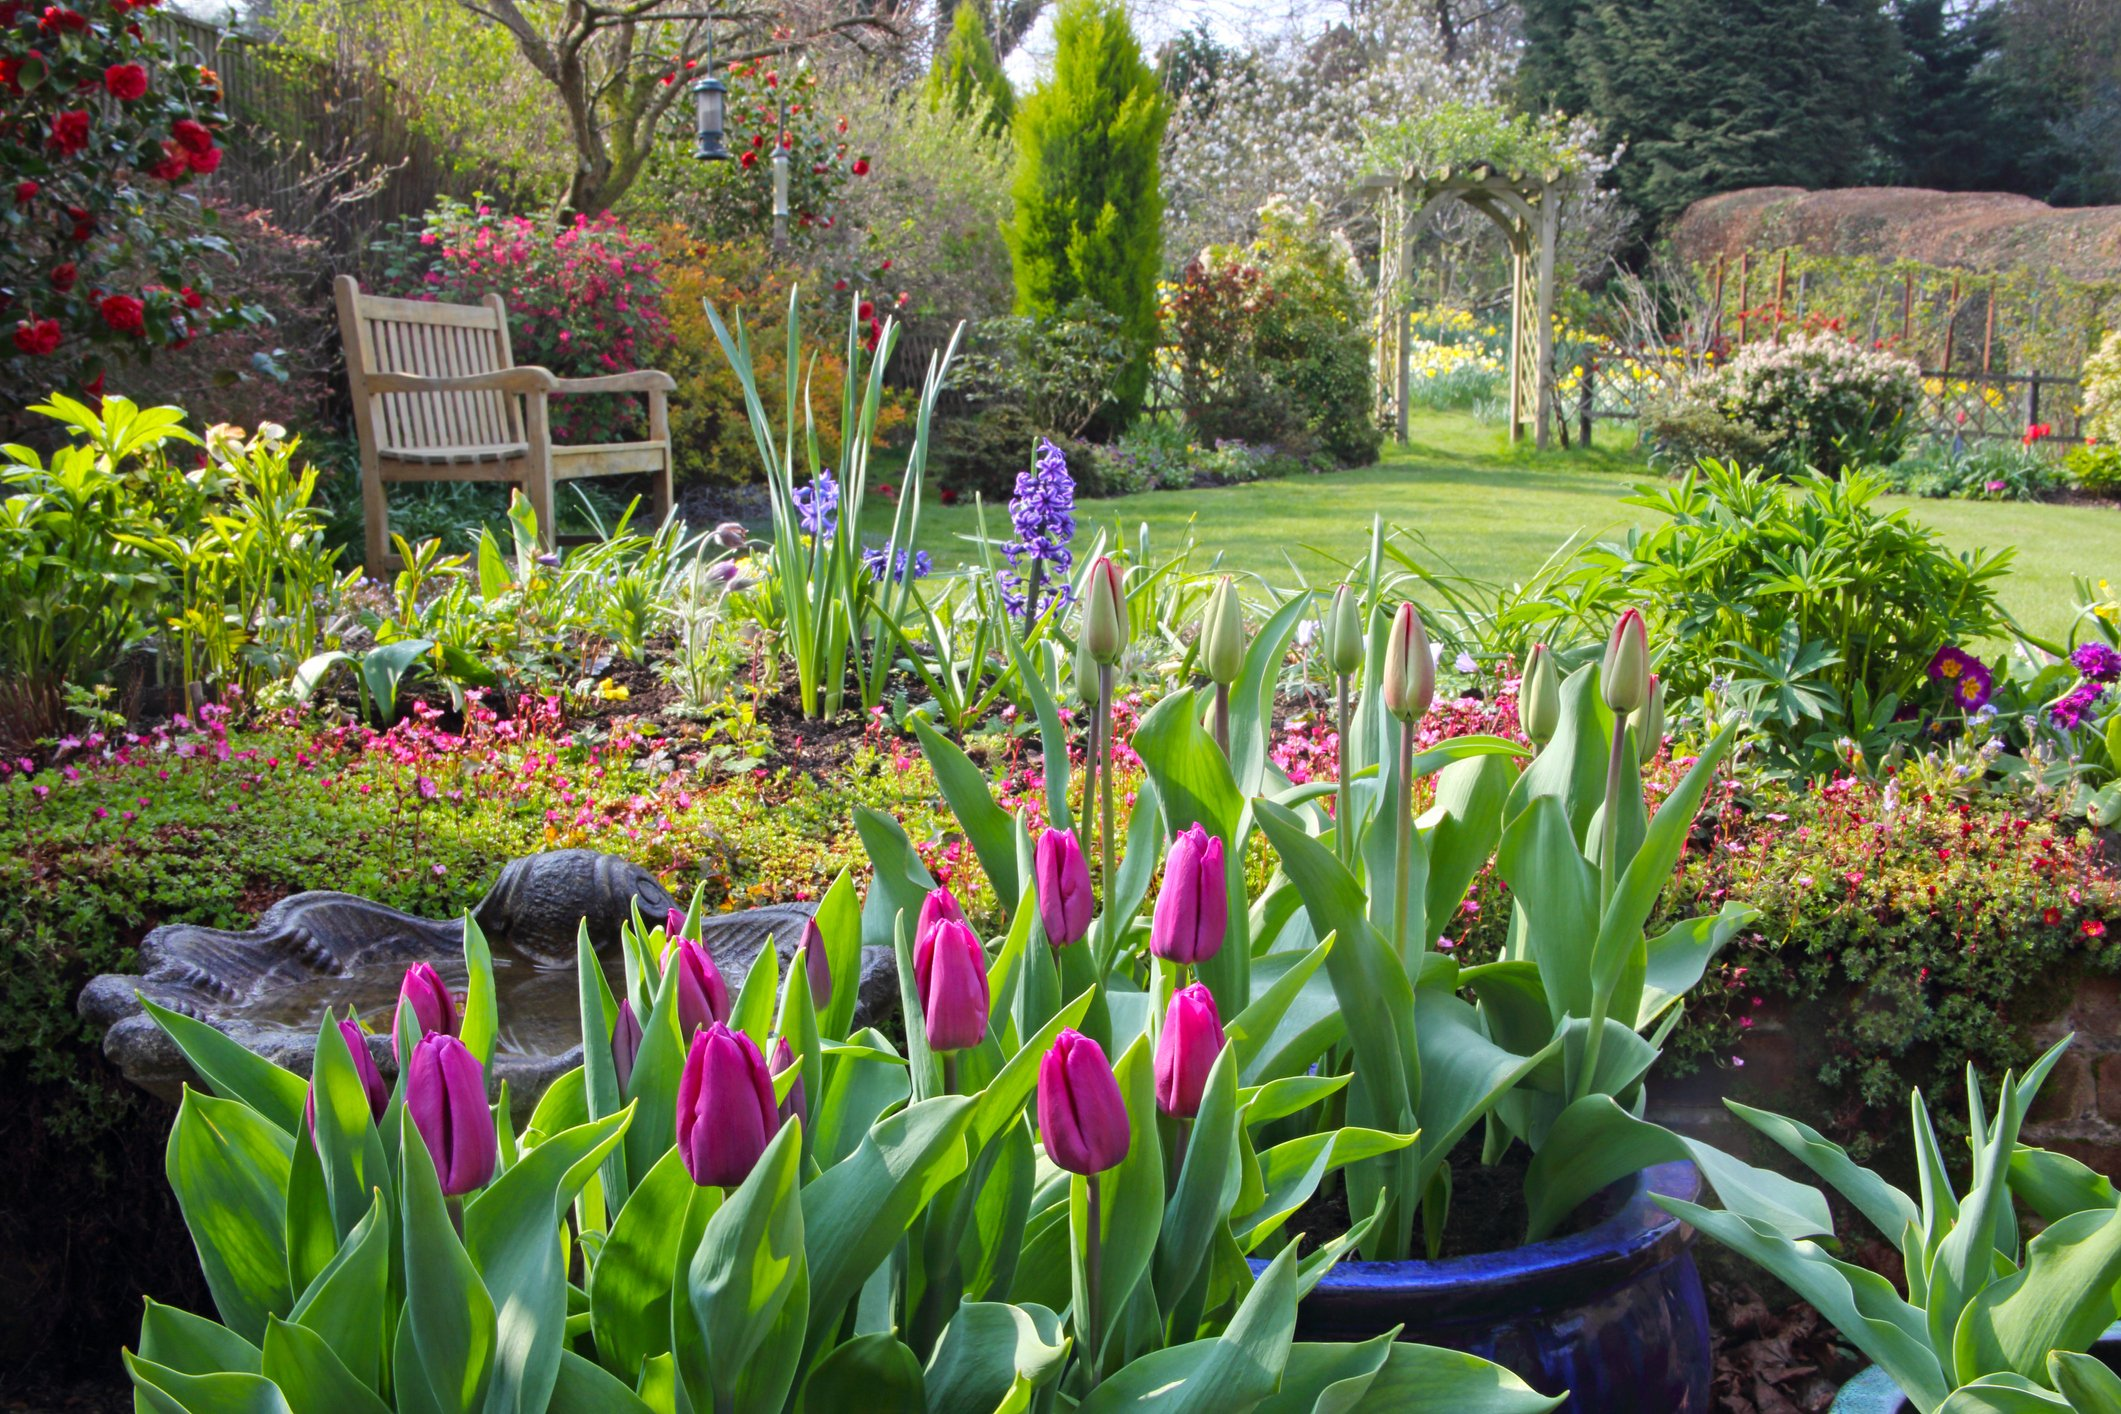 English country garden in spring with pots of tulips on the patio, flowers in the borders, flowering shrubs, a rose arch and a garden seat on the lawn, Haslemere, Surrey, England, UK. | Photo: Getty Images